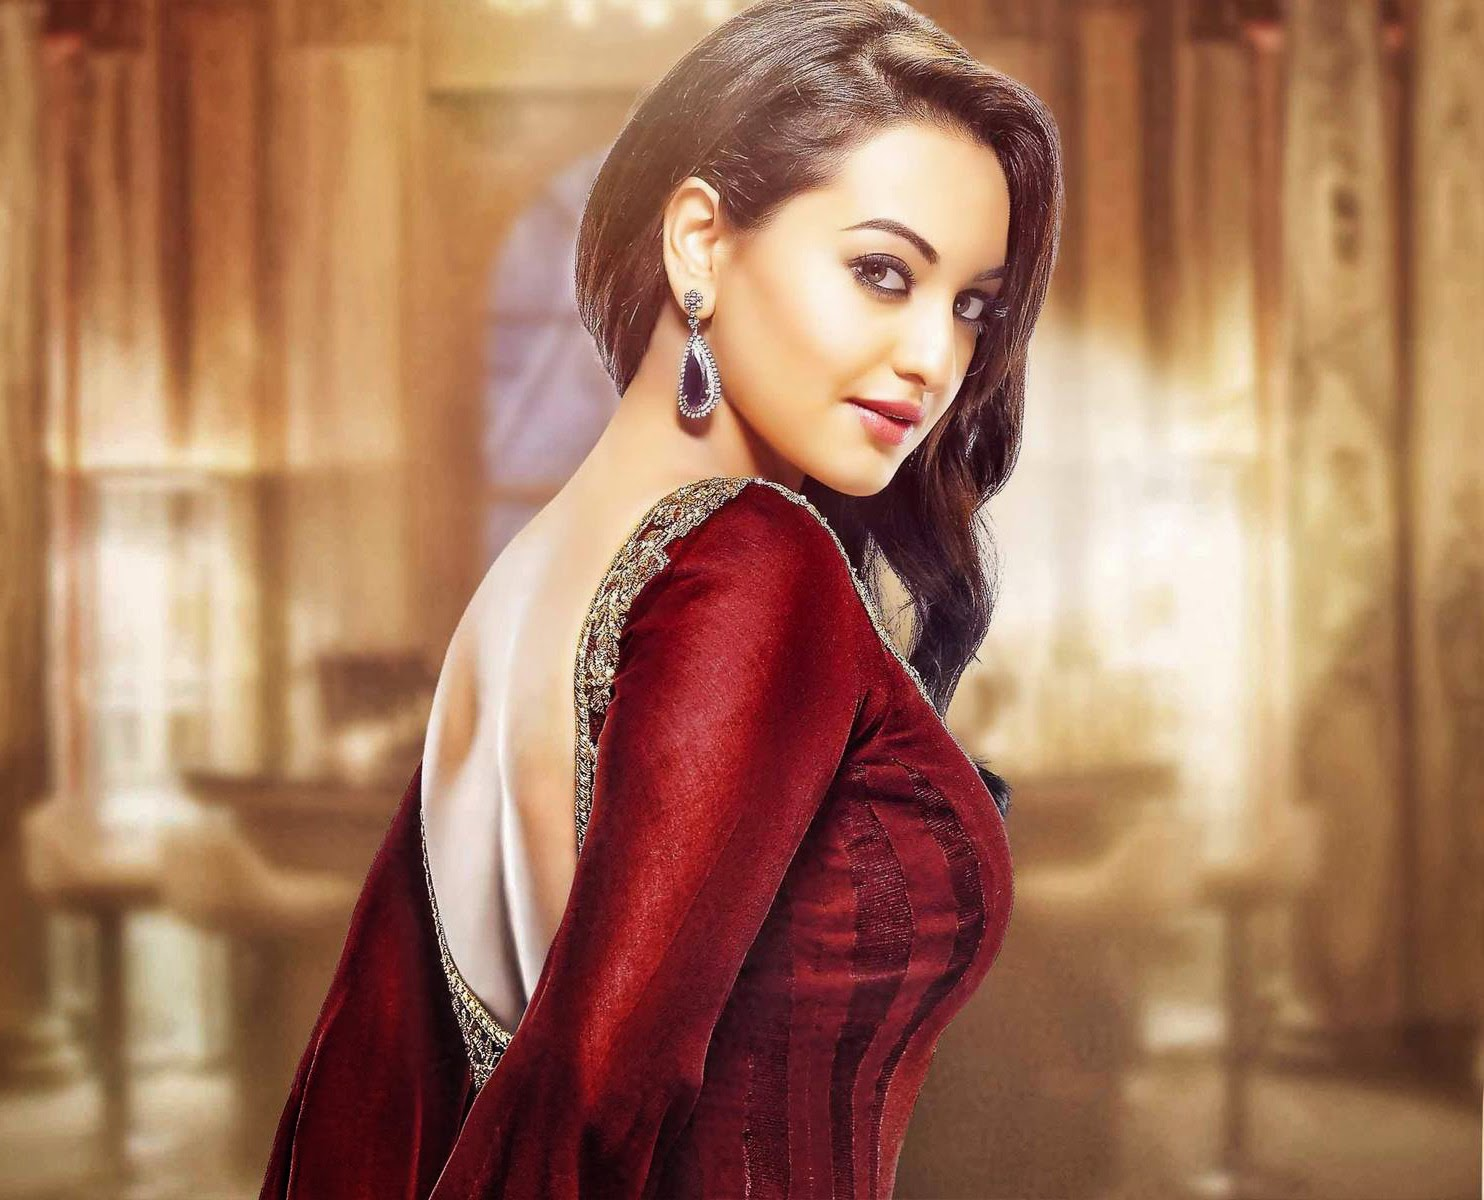 sonakshi sinha latest hd wallpapers - photo #1